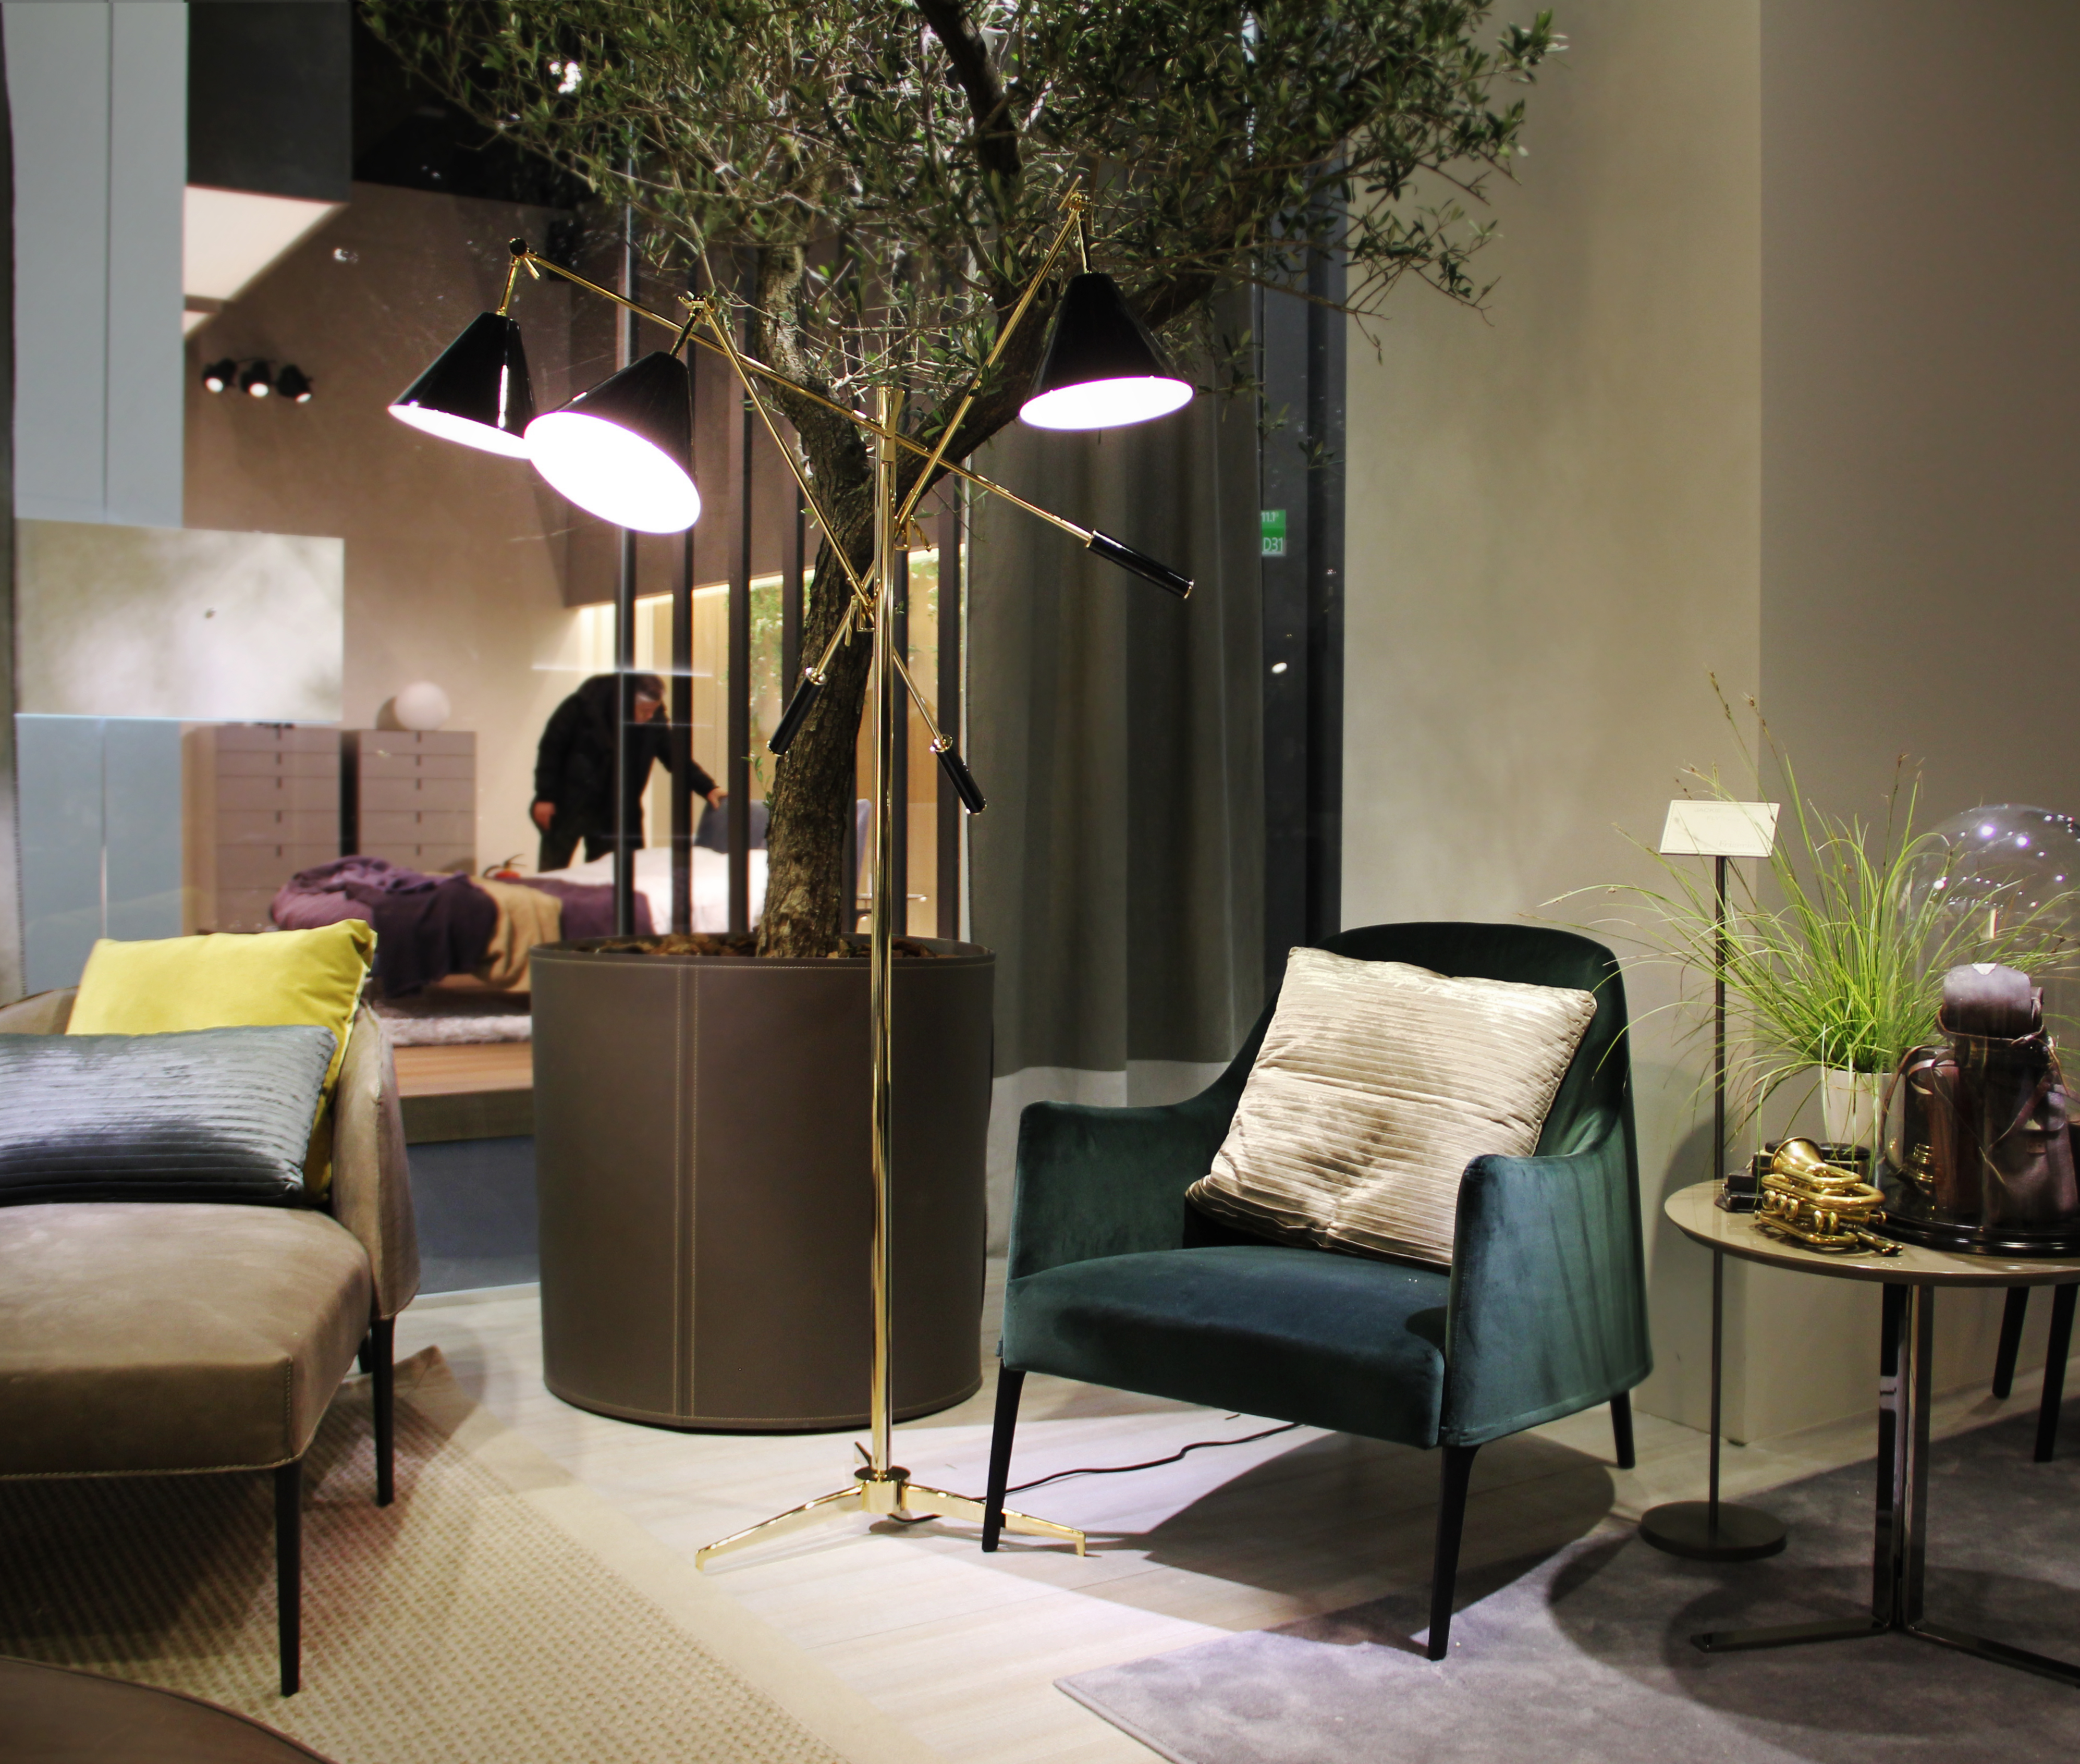 floor samples floor samples Floor Samples For Your Home Office Décor! Sinatra Floor Lamp Is Ready To Ship 4